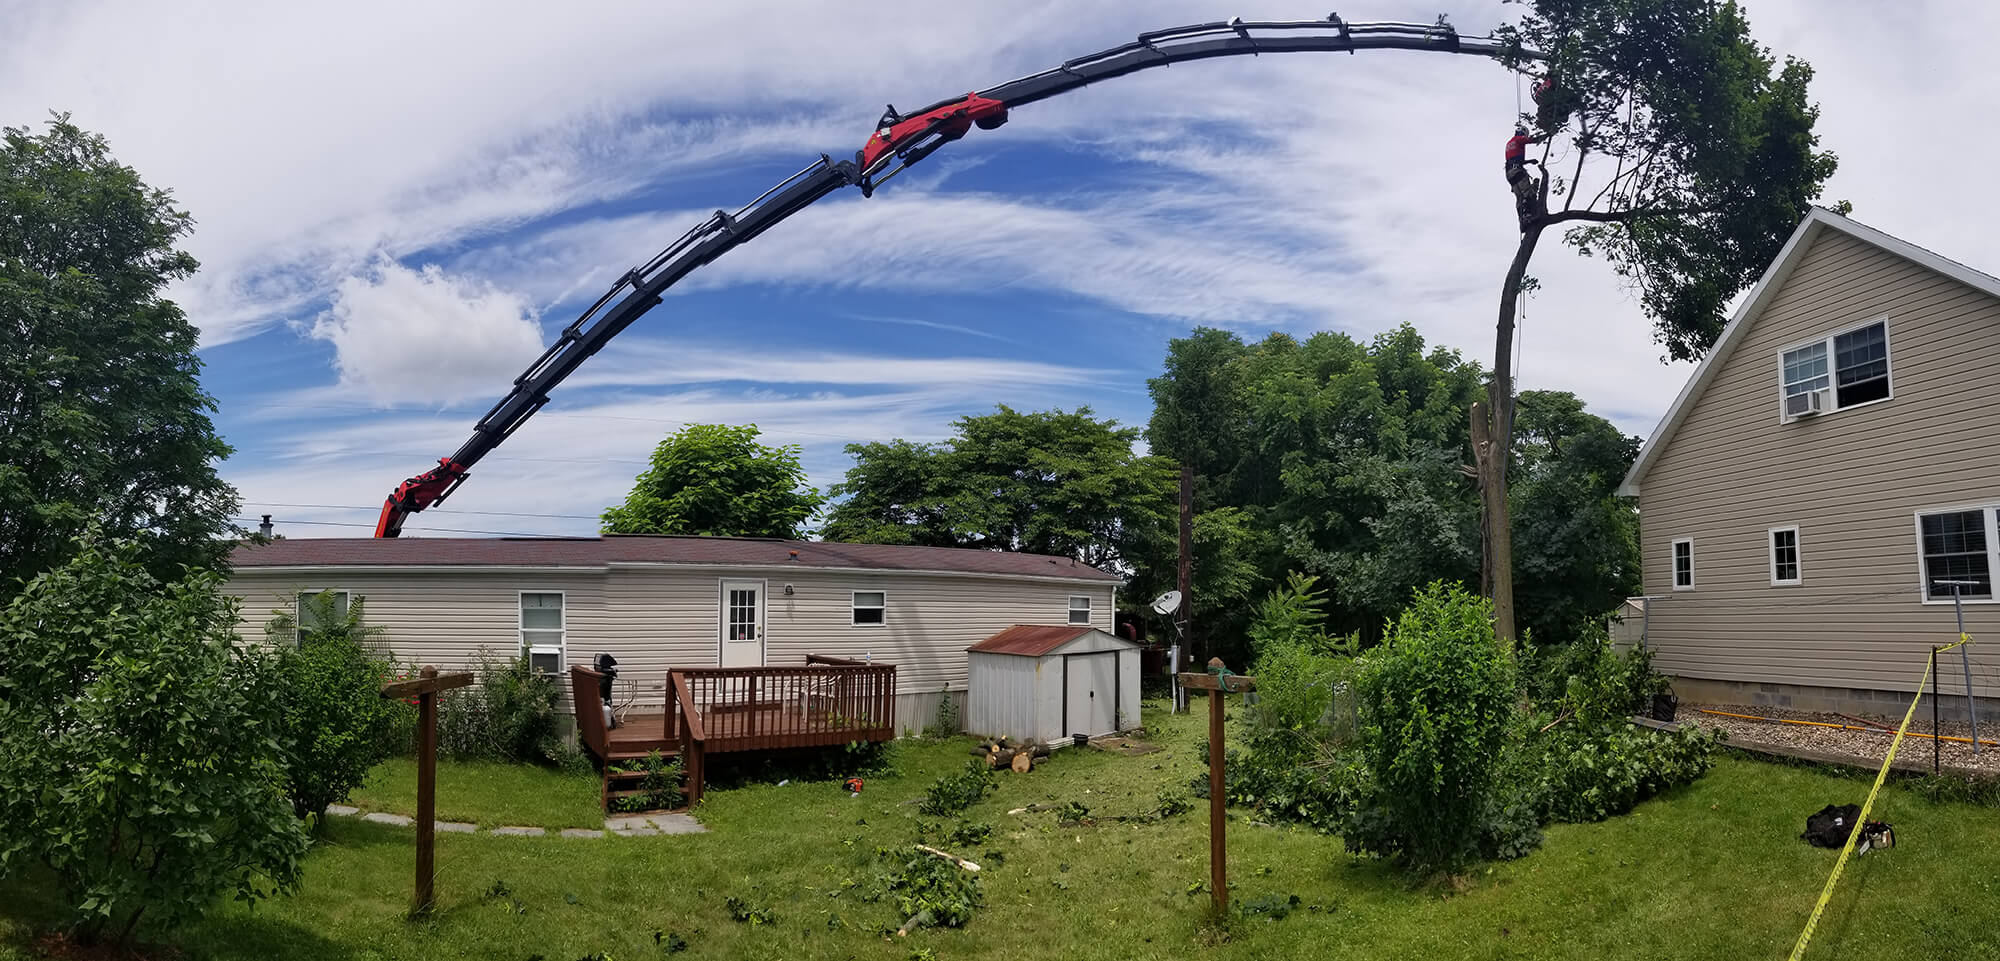 The large tree over the house is being removed one limb at a time with the Tree Mek